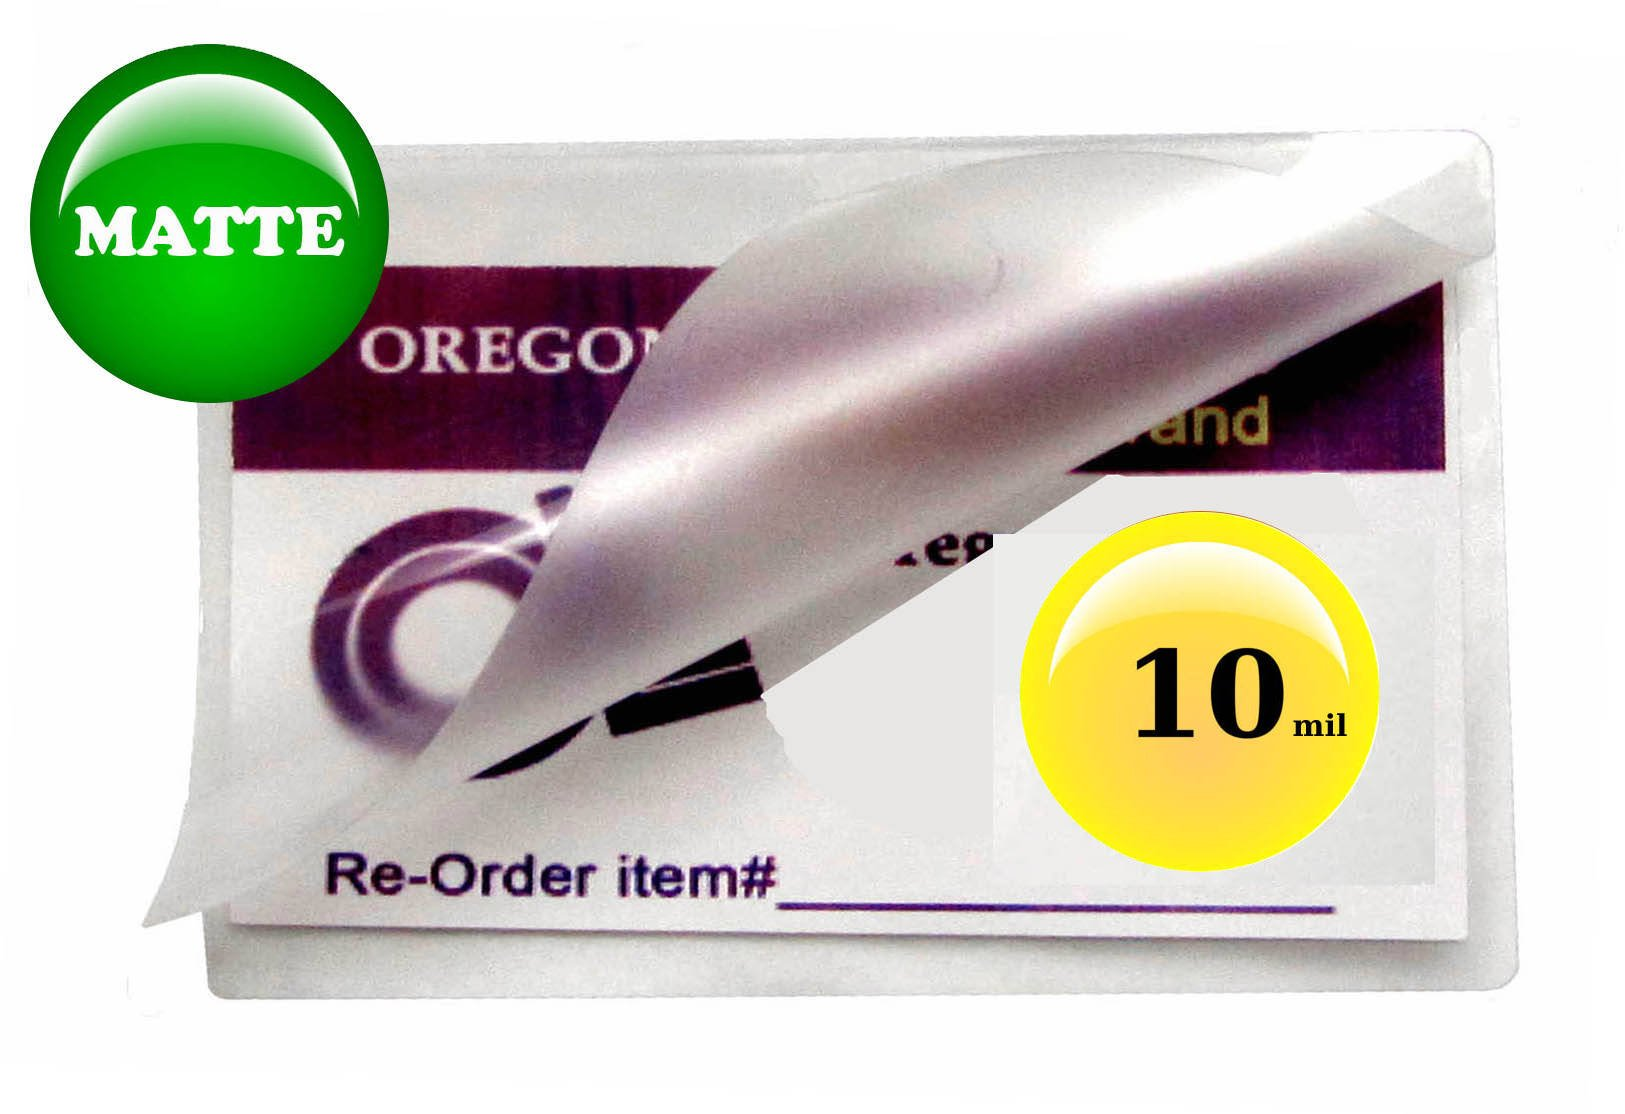 Oregon Lamination Hot Laminating Pouches Business Card (pack of 200) 10 Mil 2-1/4 x 3-3/4 Matte/Matte